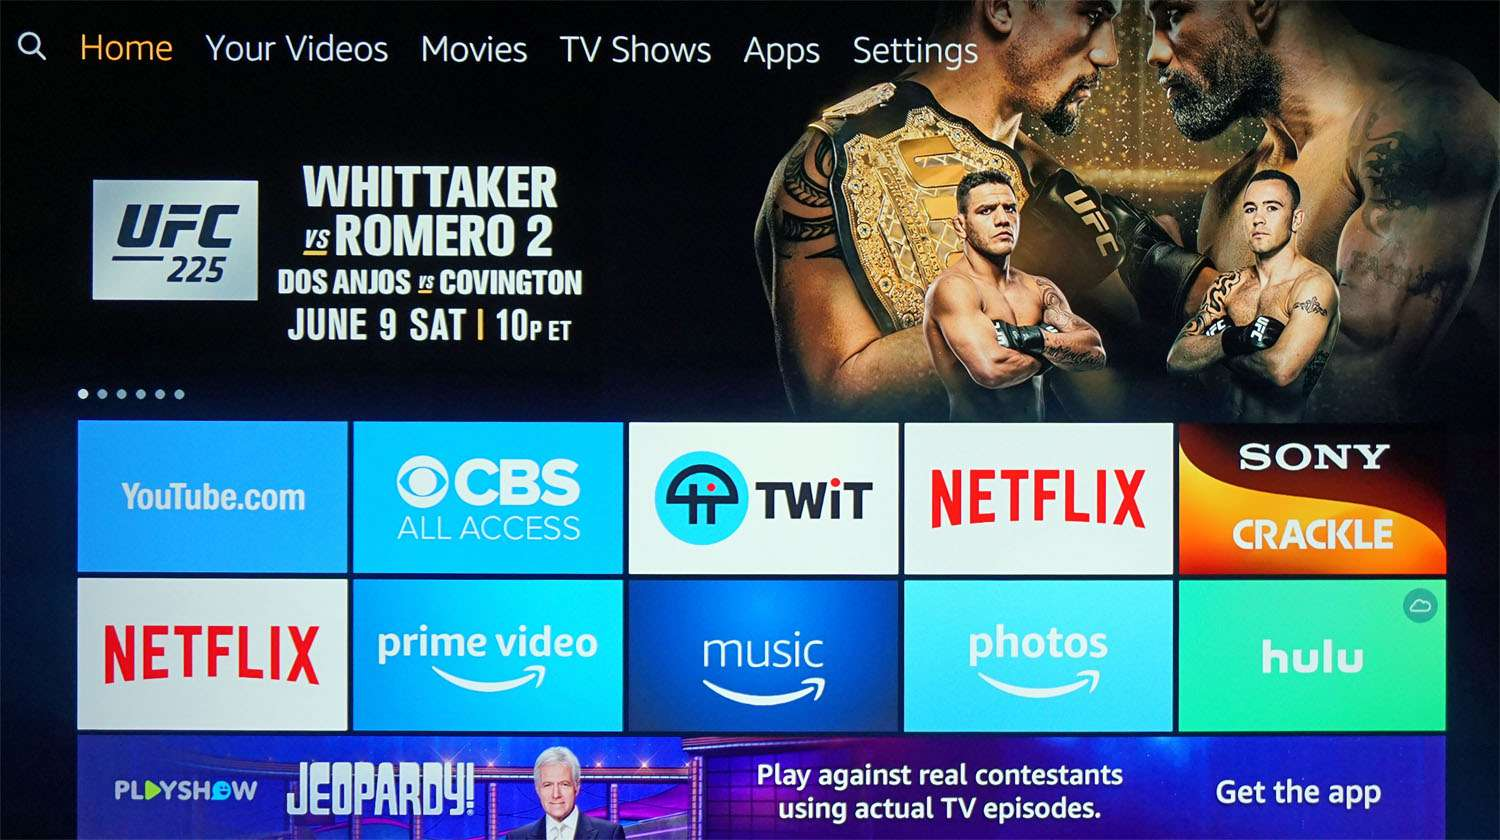 The Amazon Fire Tv Stick Review Directv Wireless Wiring Diagram Home Page Example